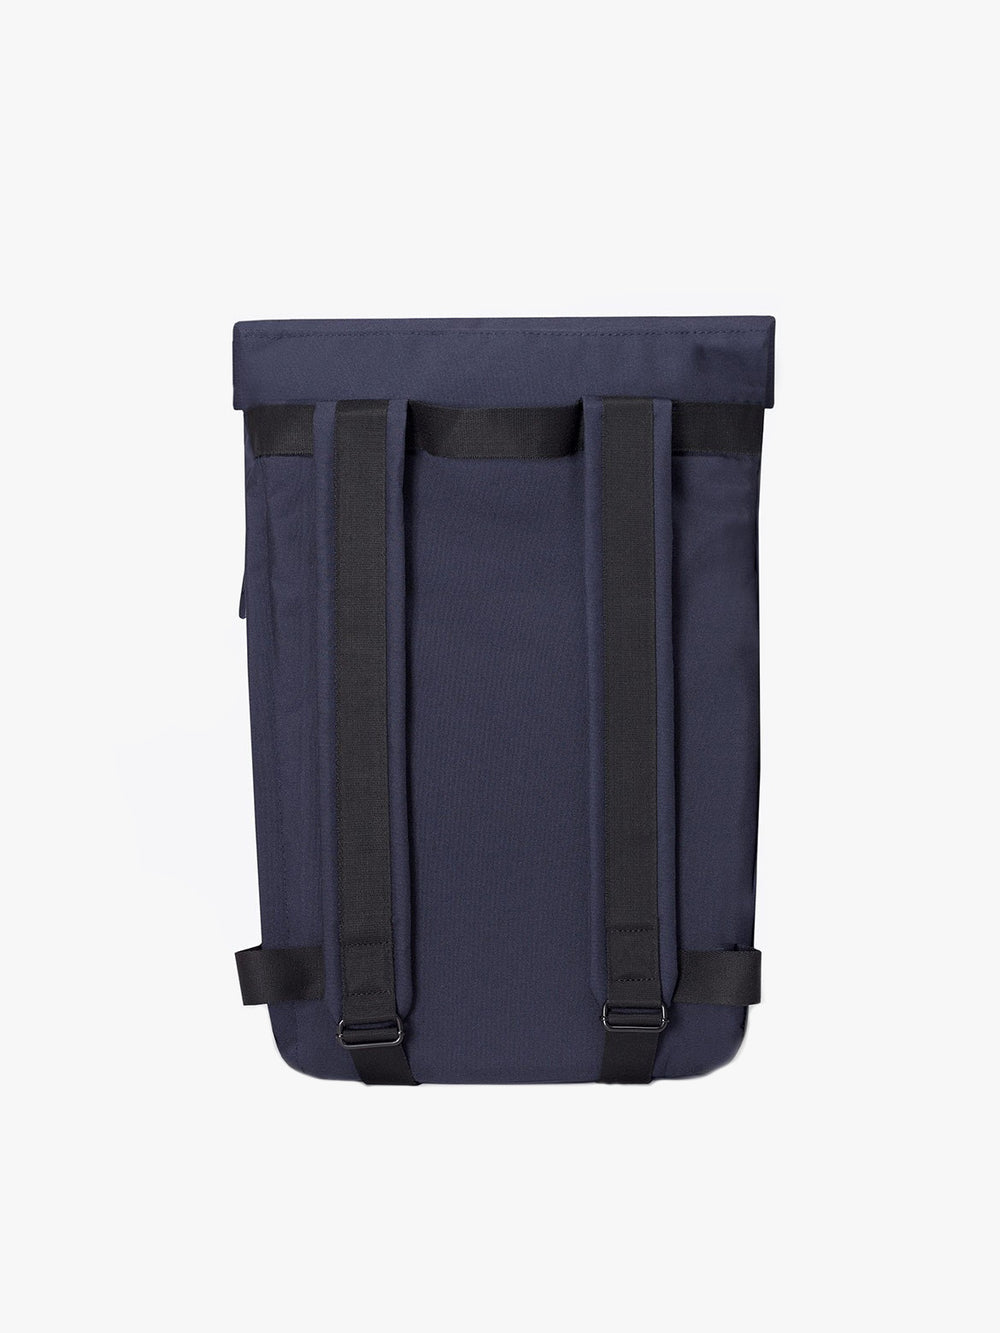 Ucon Acrobatics backpack designed for the urban use